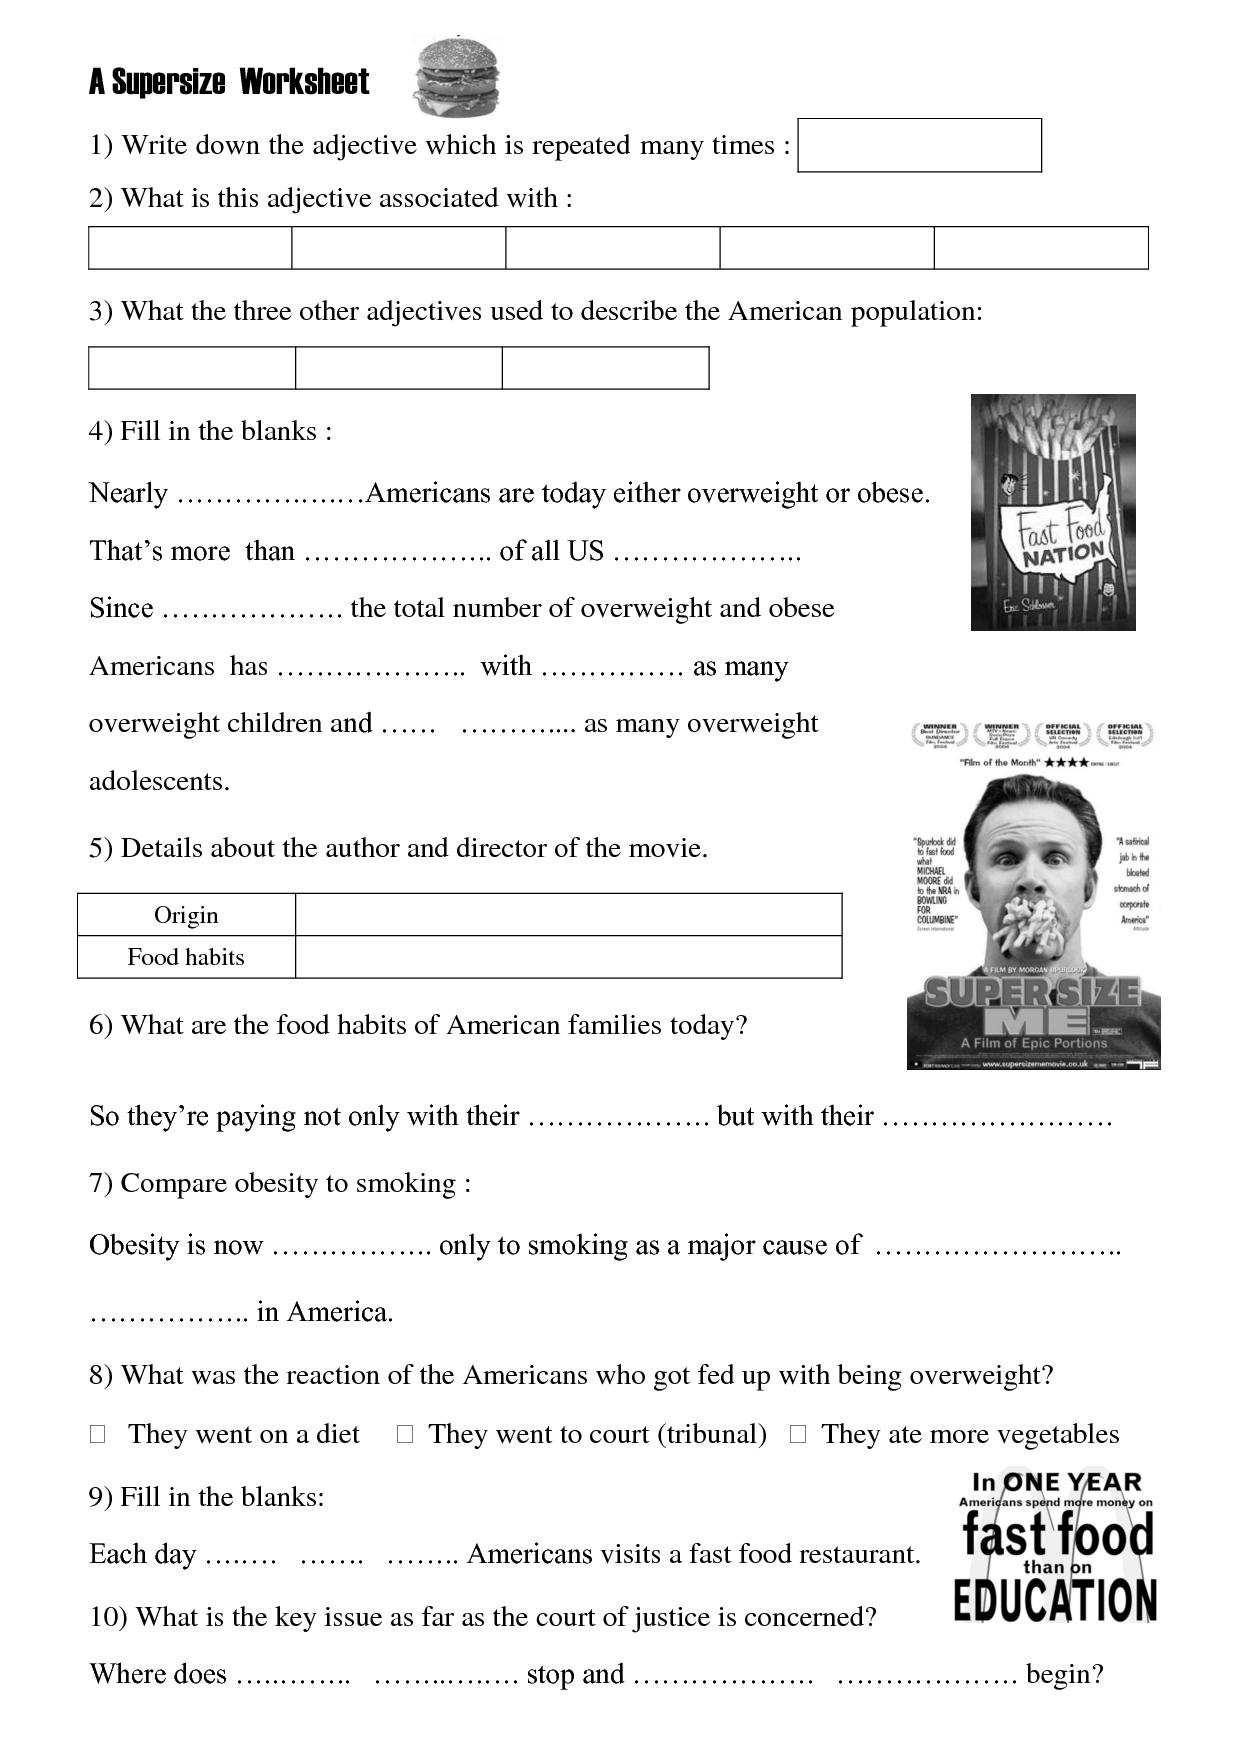 Movie Worksheet Super Size Me With Images